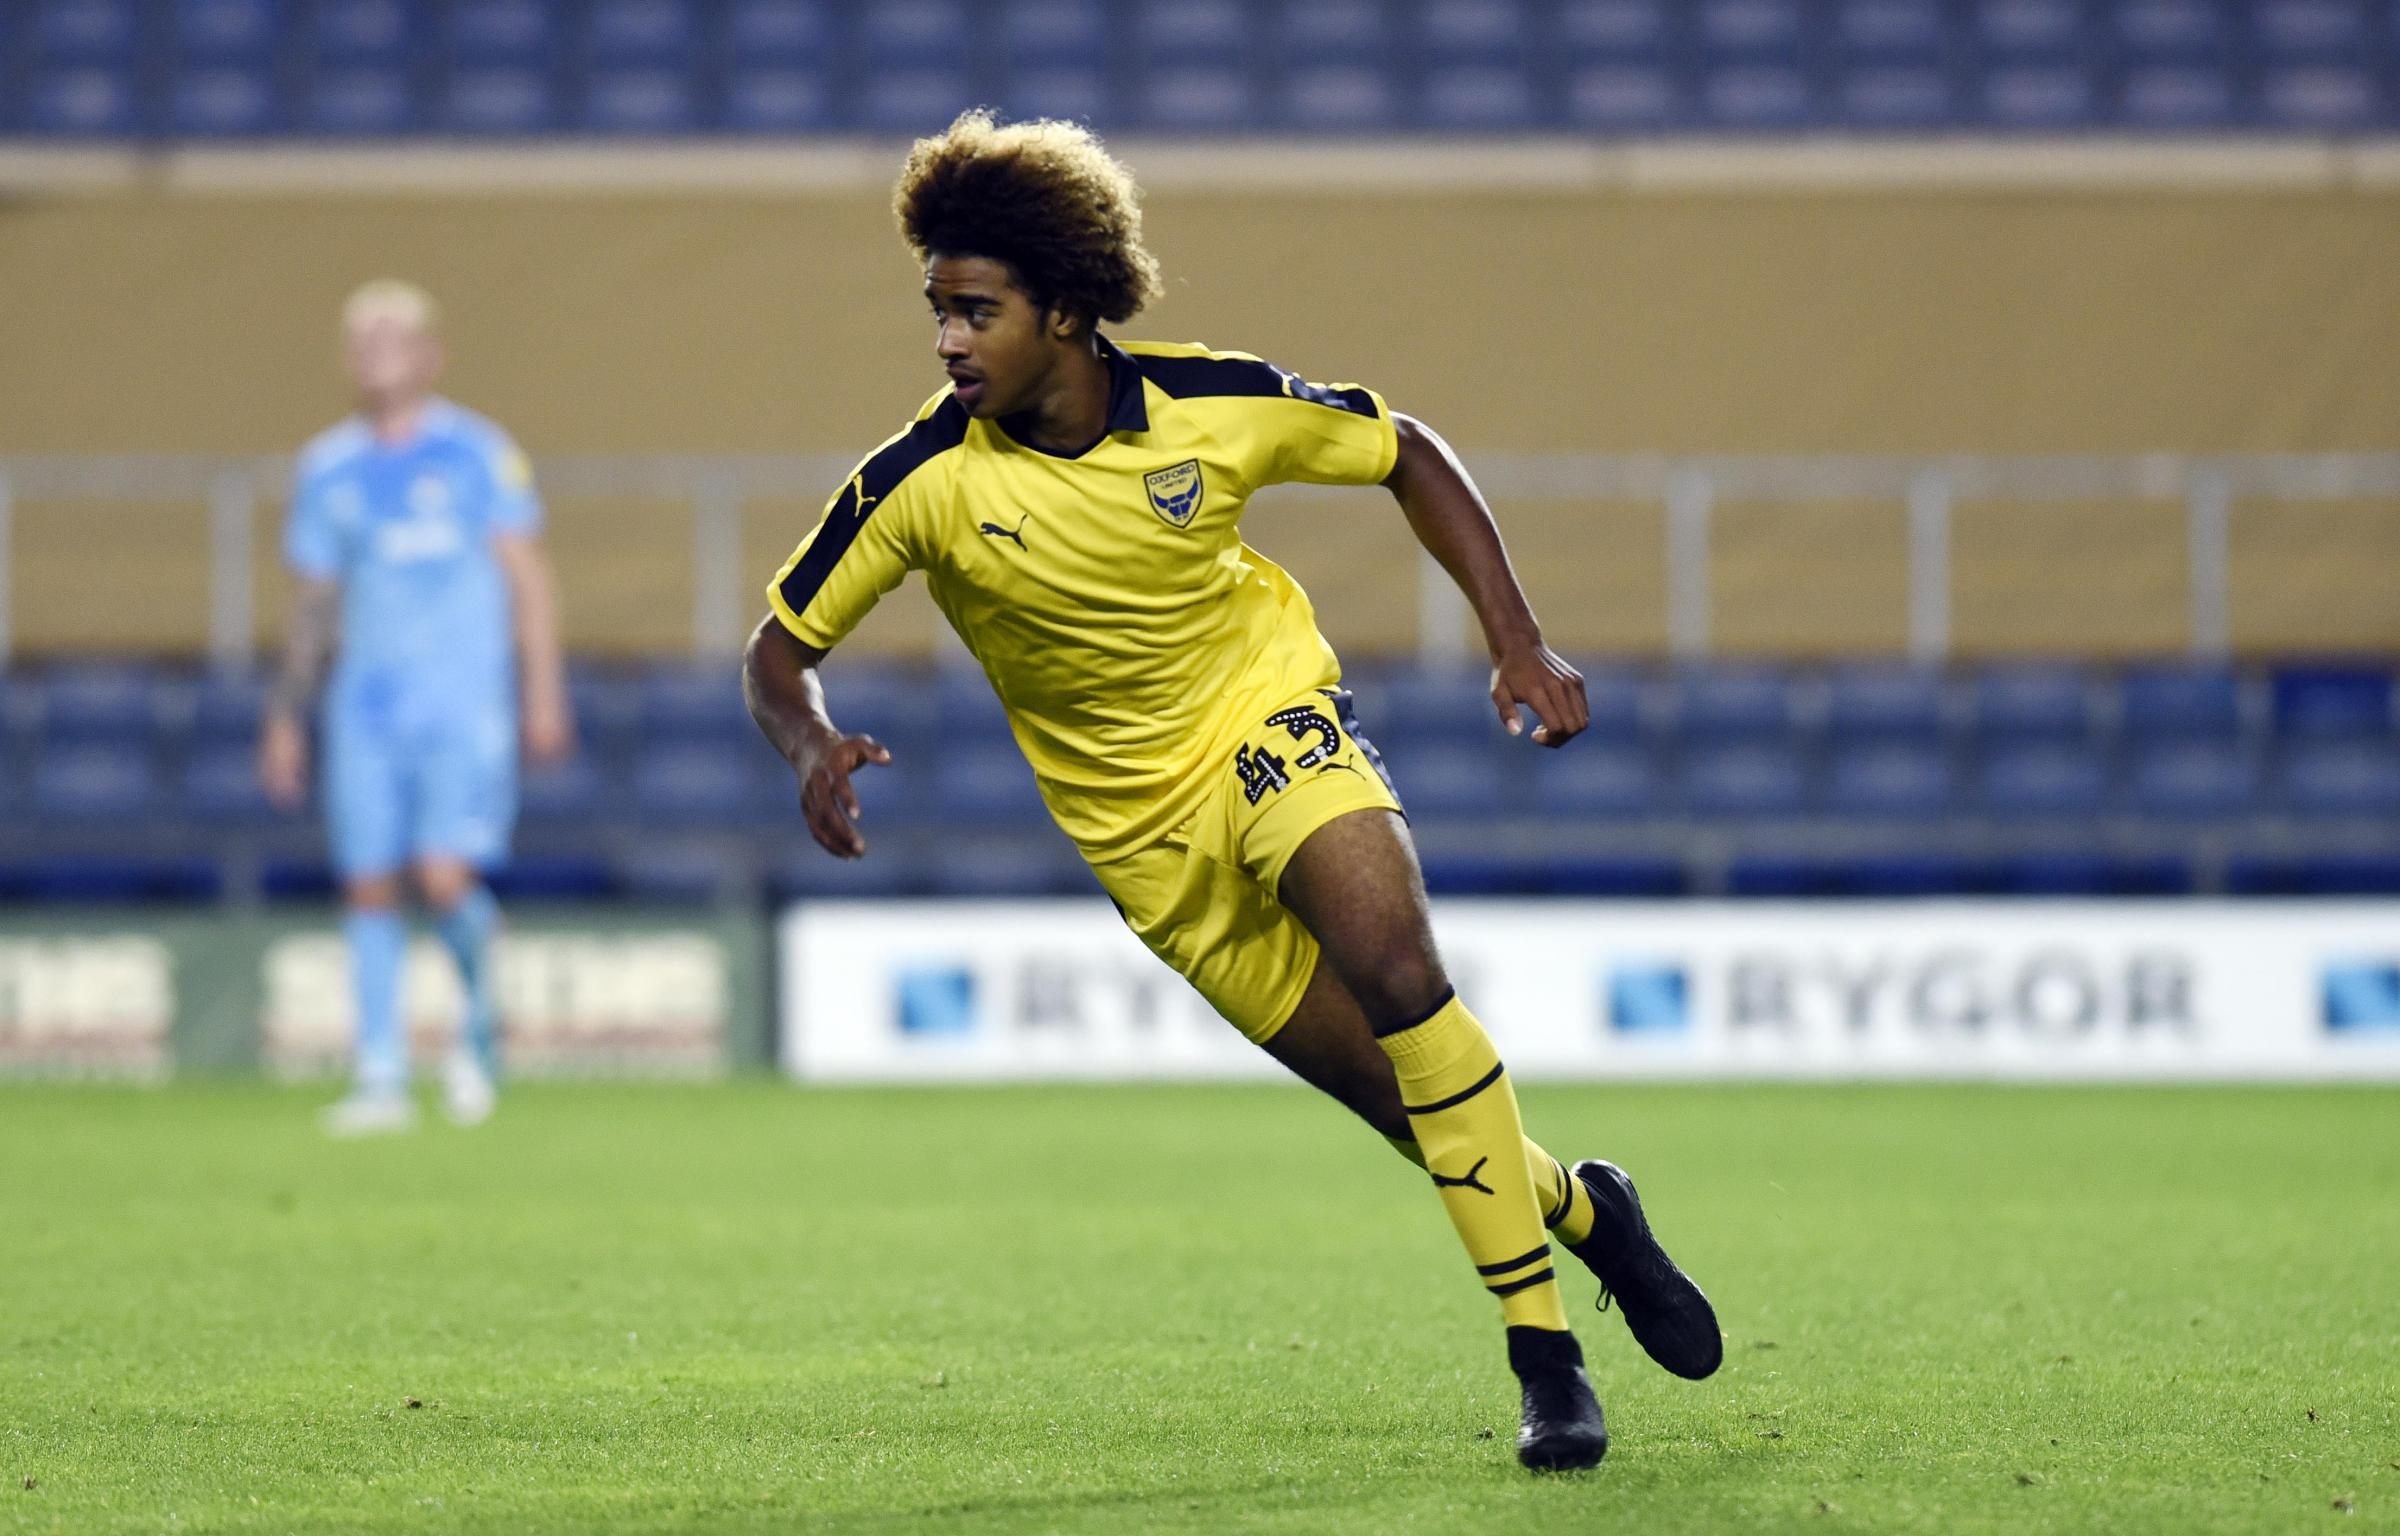 Fabio Lopes scored the crucial late equaliser to earn Oxford United the point required for the title  Picture: David Fleming